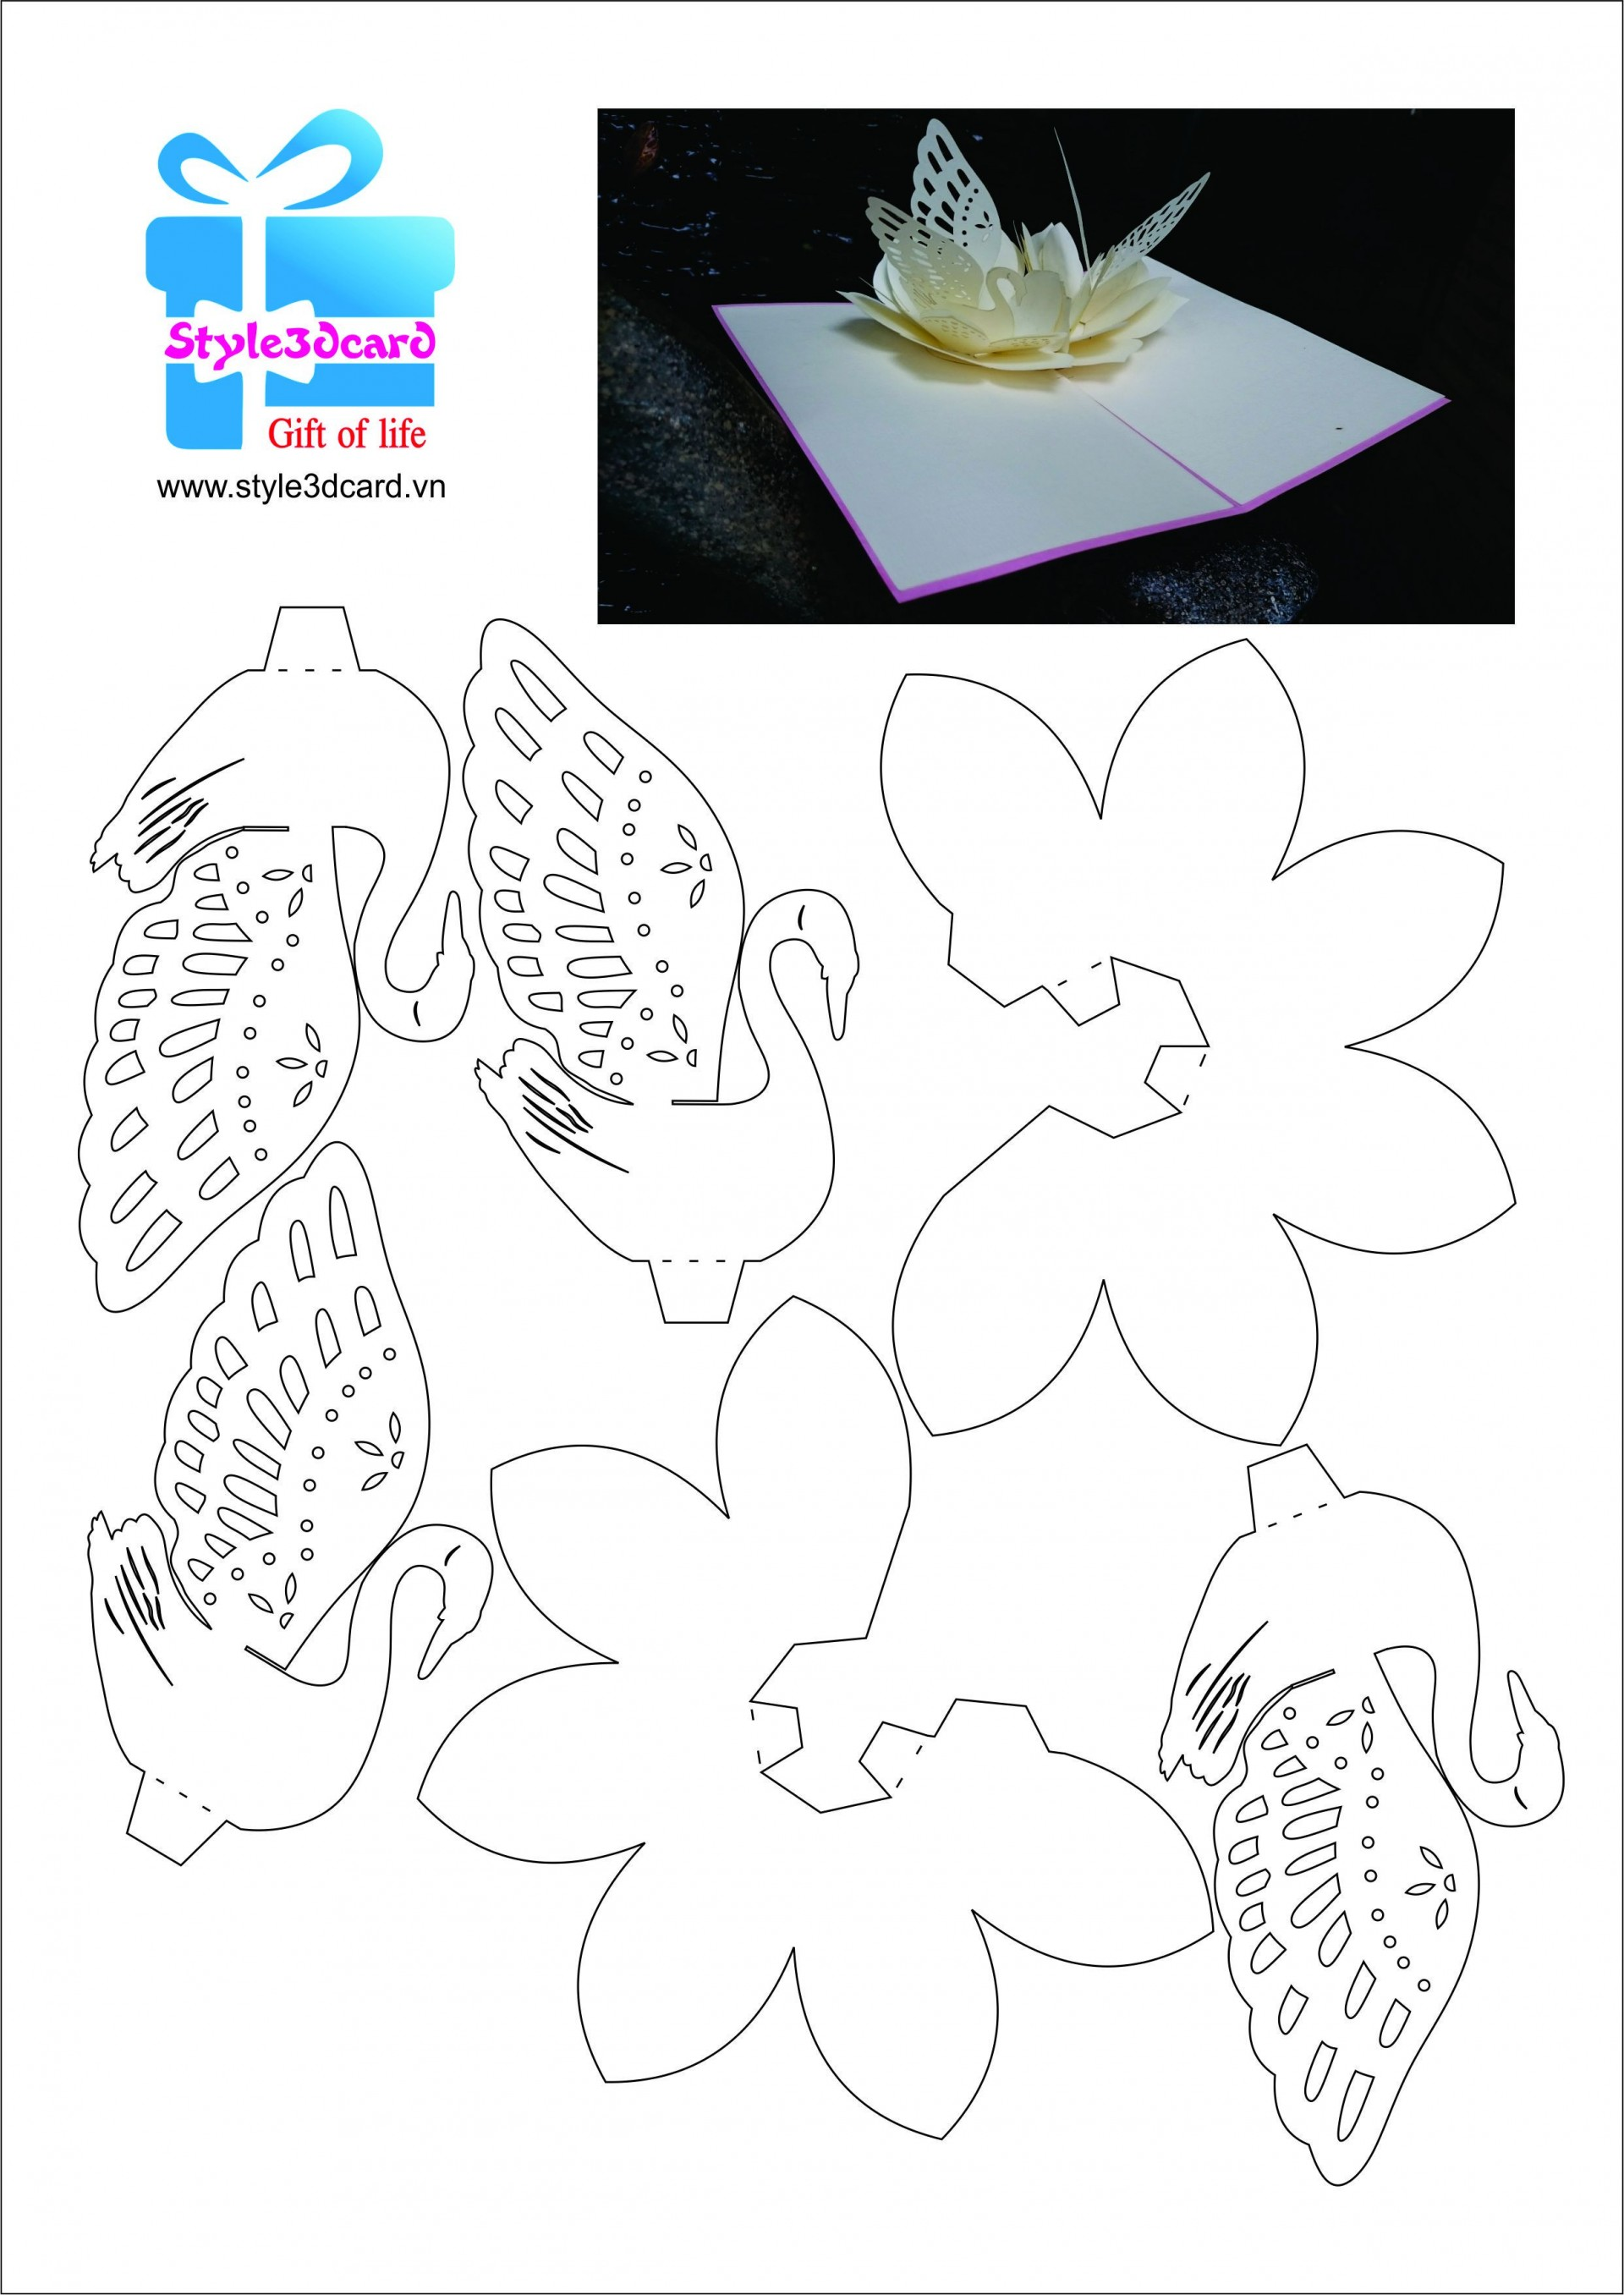 000 Incredible Pop Up Card Template Concept  Templates Birthday Free Download Printable Flower1920